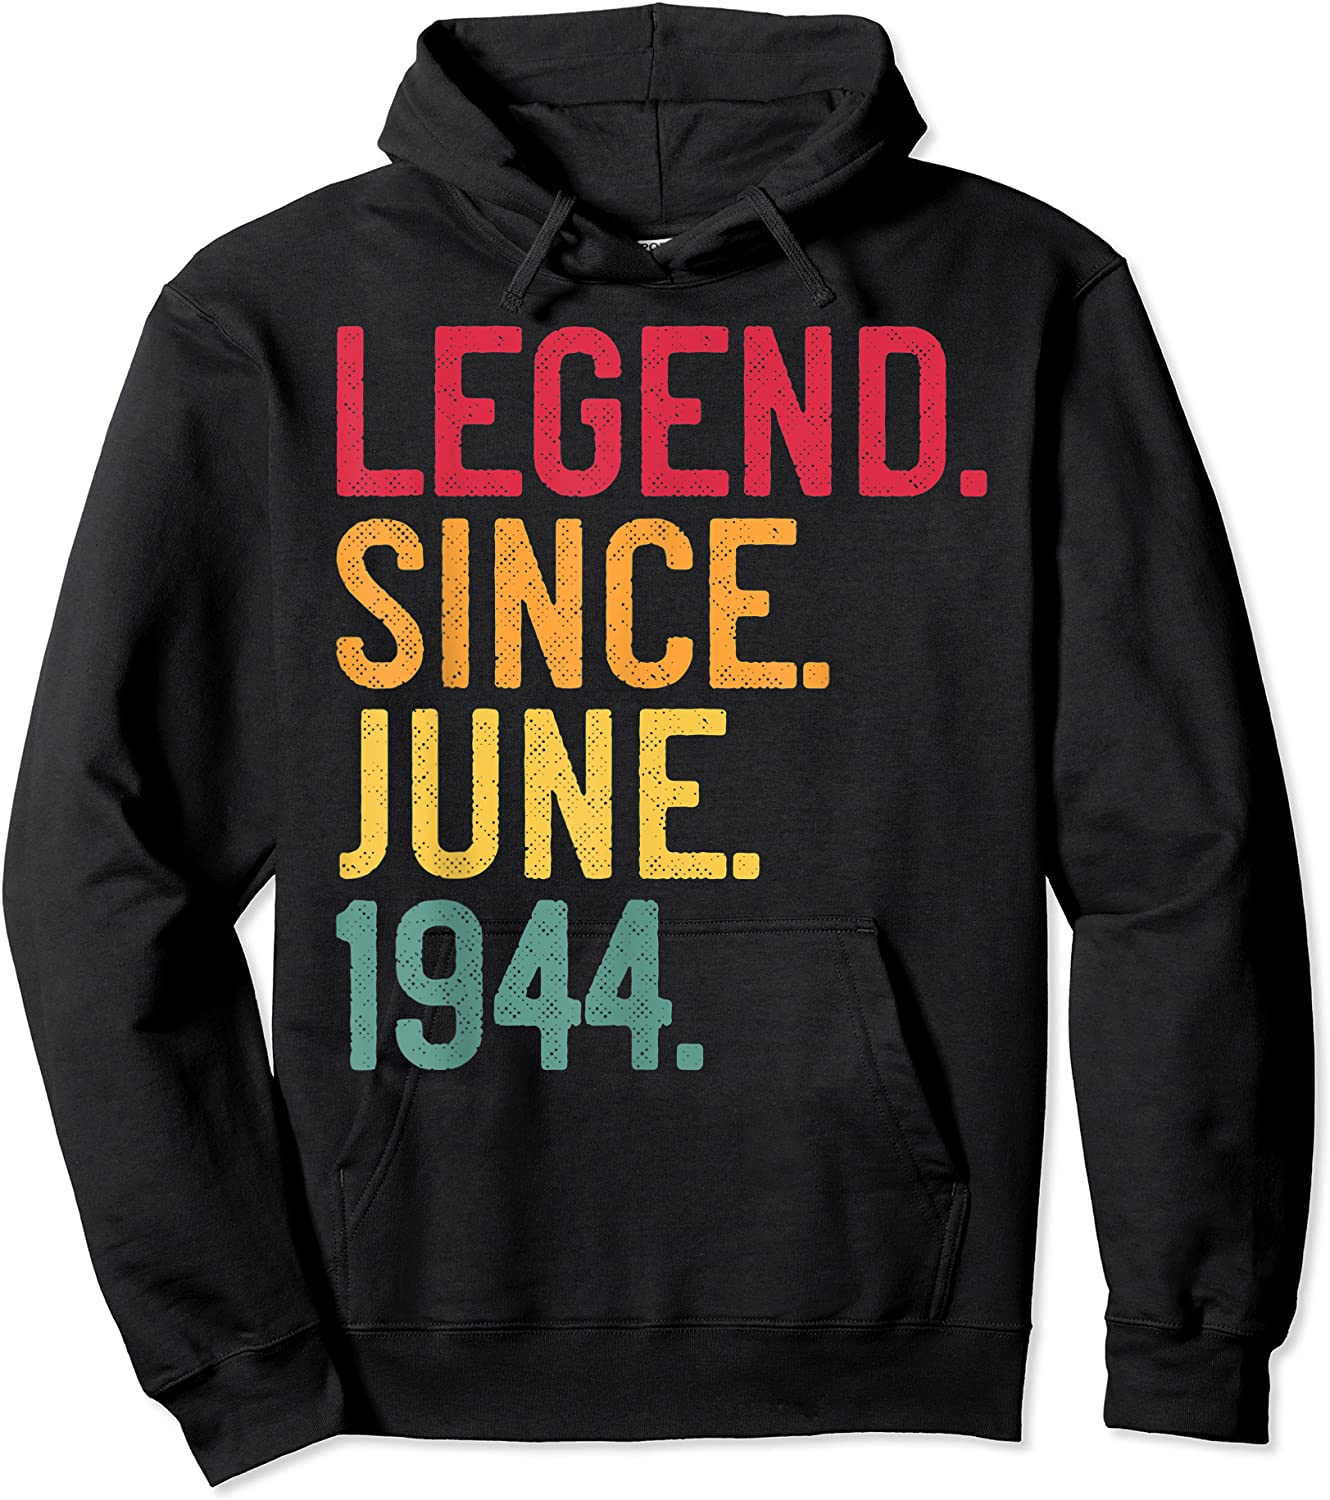 Legend Since June 1944 77th Birthday 77 Years Old Vintage T-shirt Unisex Pullover Hoodie